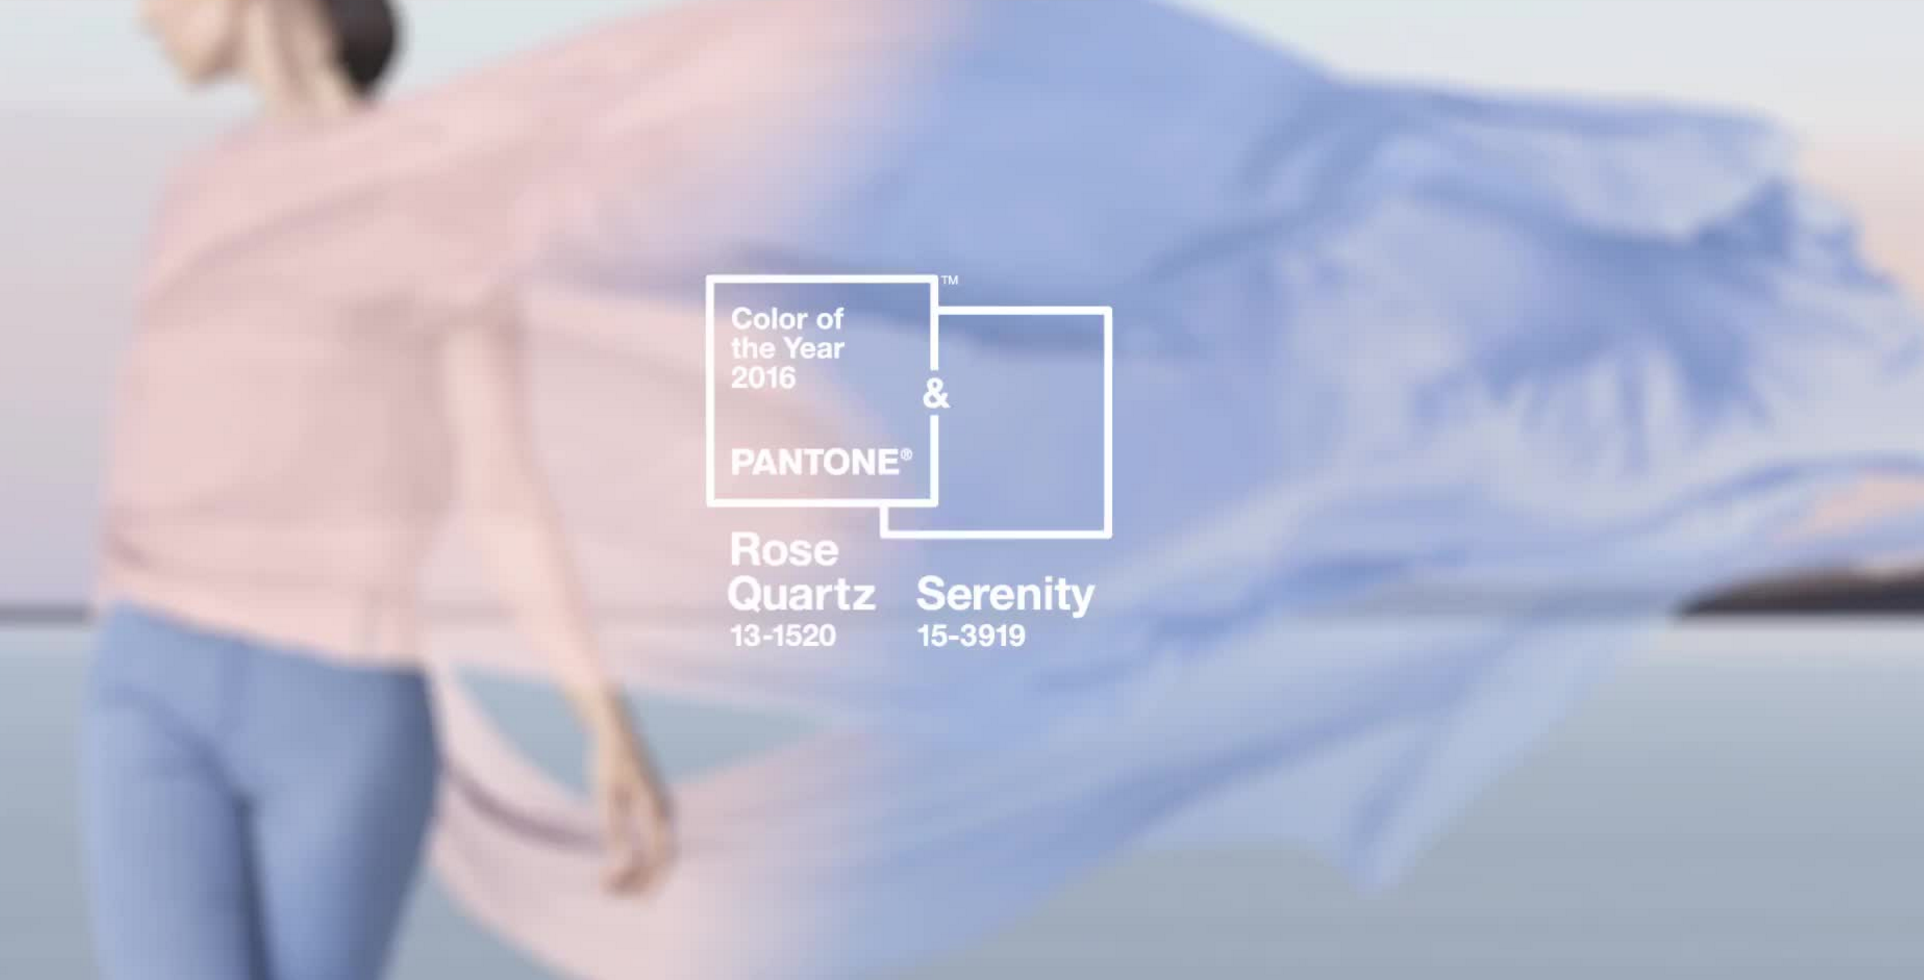 Pantone_Color_of_the_Year_Rose_Quartz_Serenity_Color_Formulas_Guides_Banner fashion dupes blog new